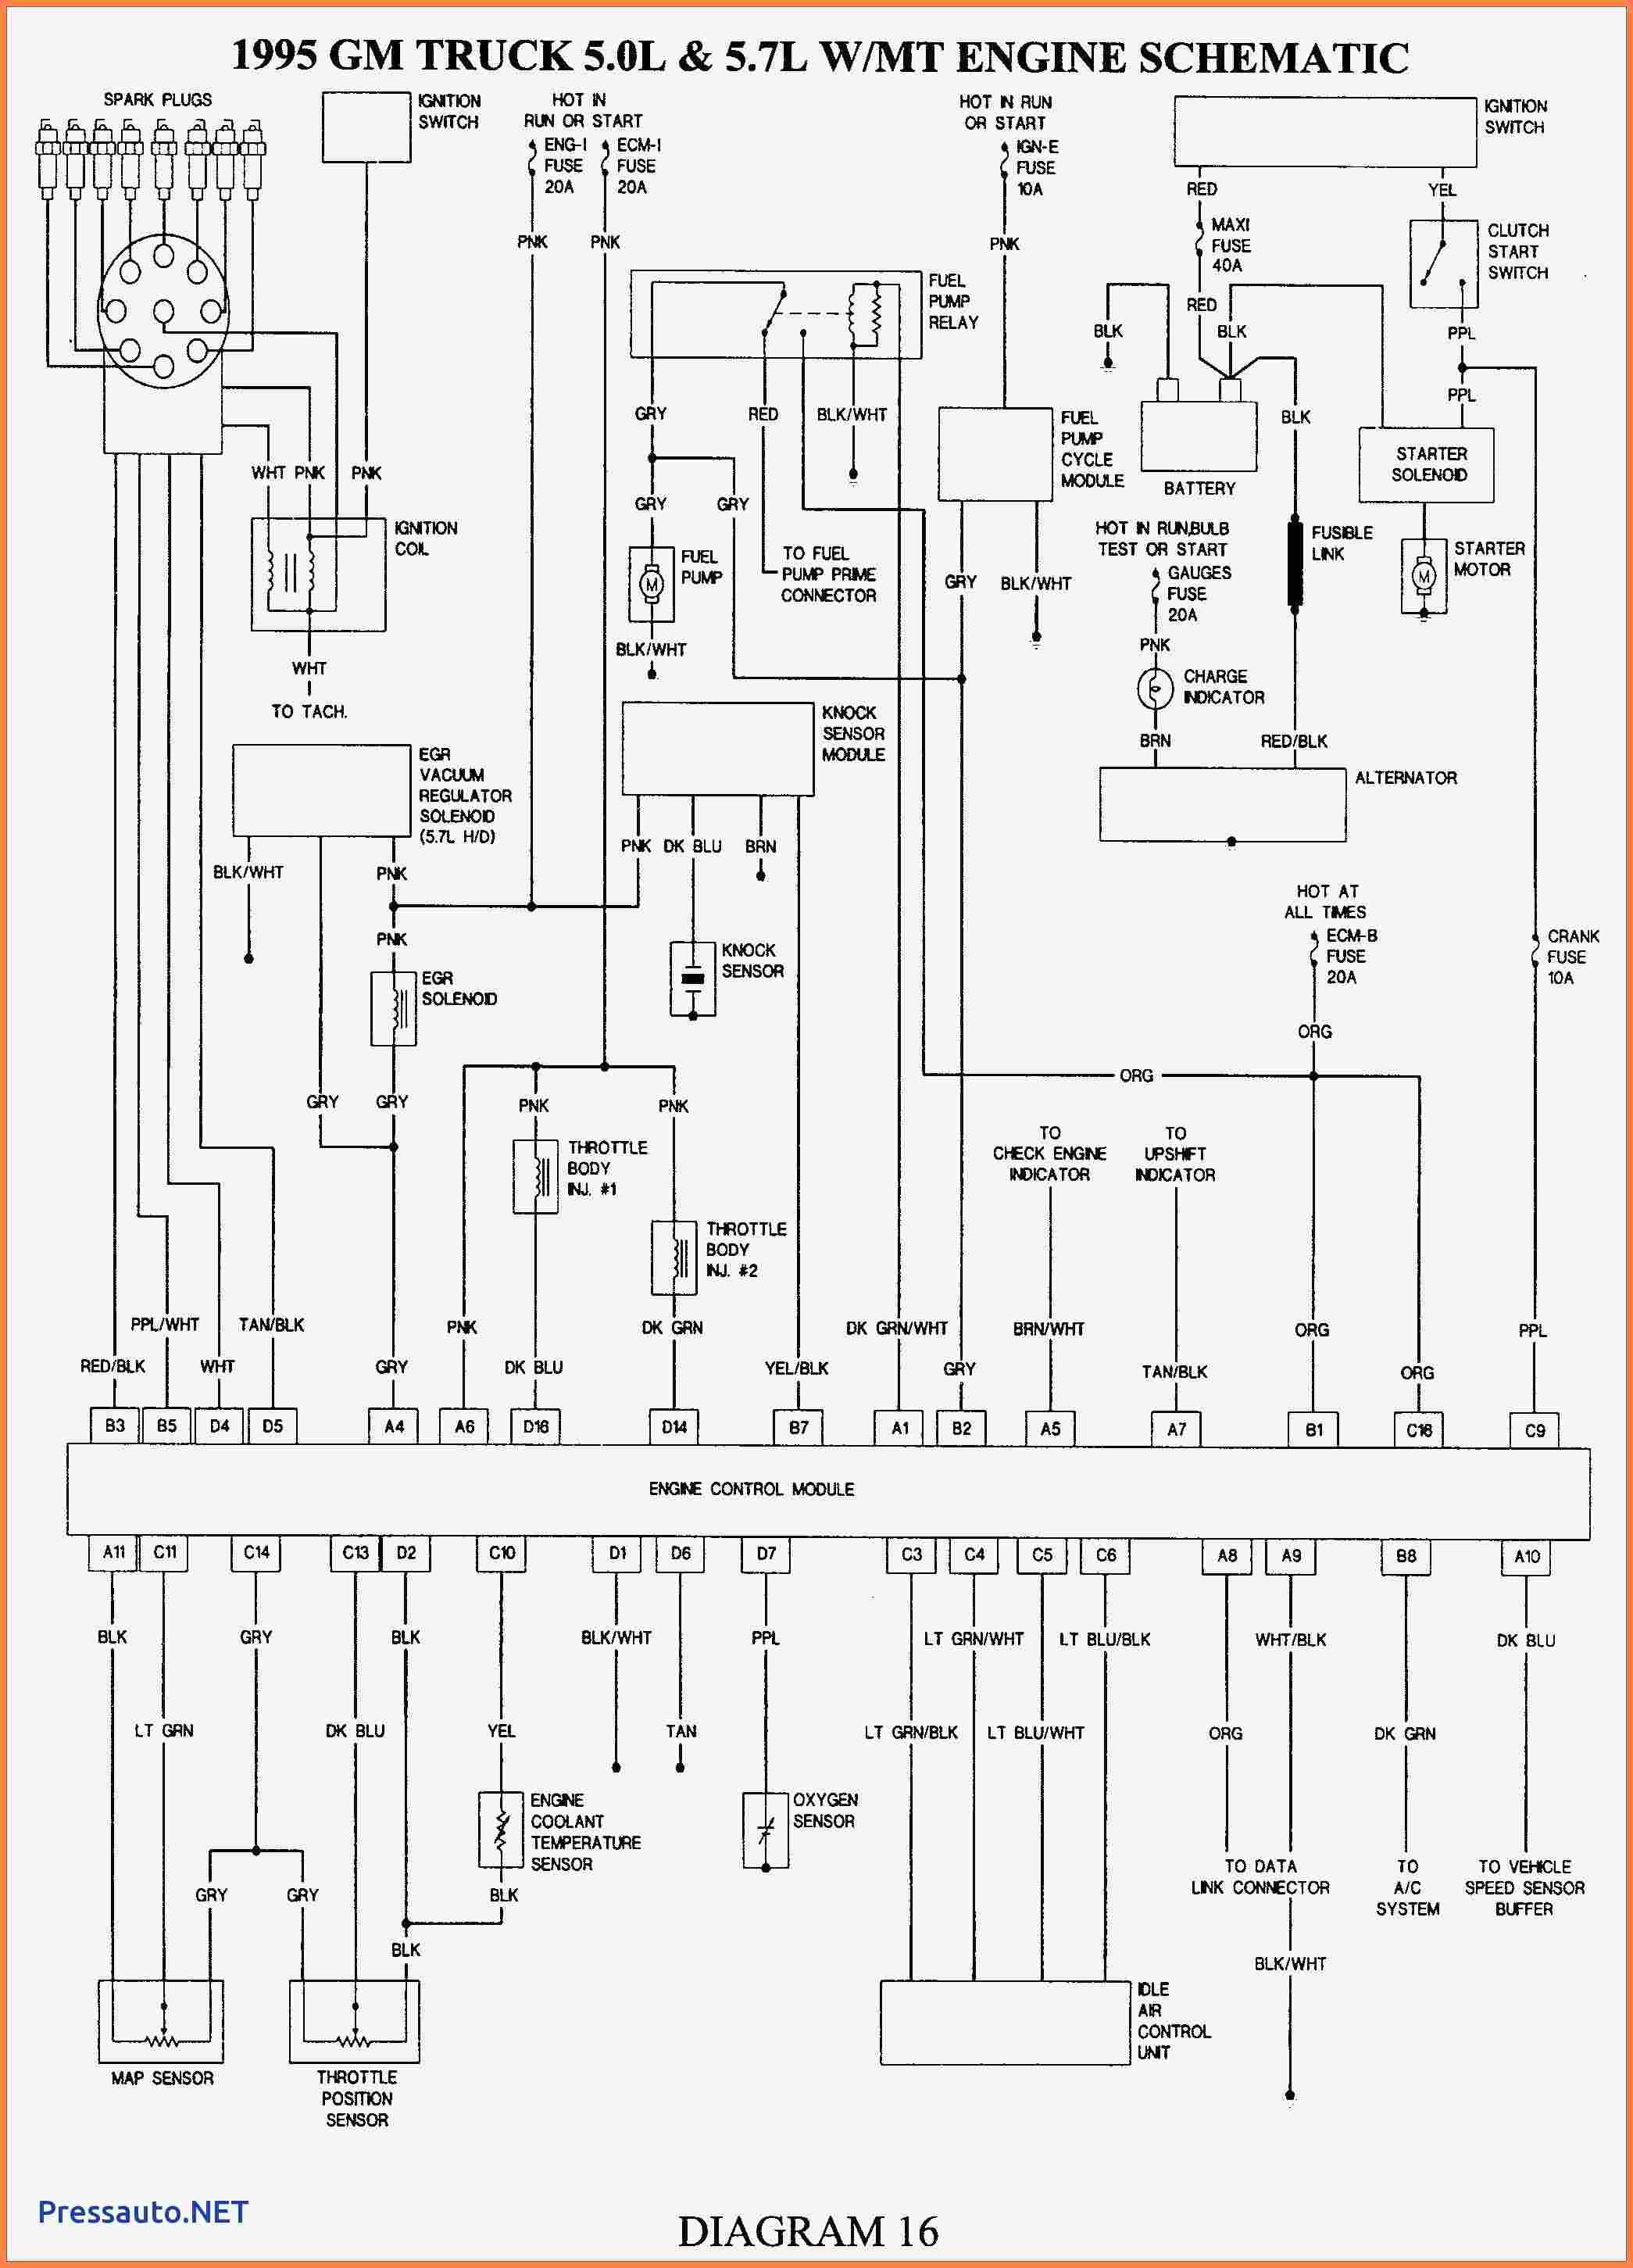 2003 Chevy Silverado Electrical Diagram Wiring Diagrams Menu Site Menu Site Alcuoredeldiabete It